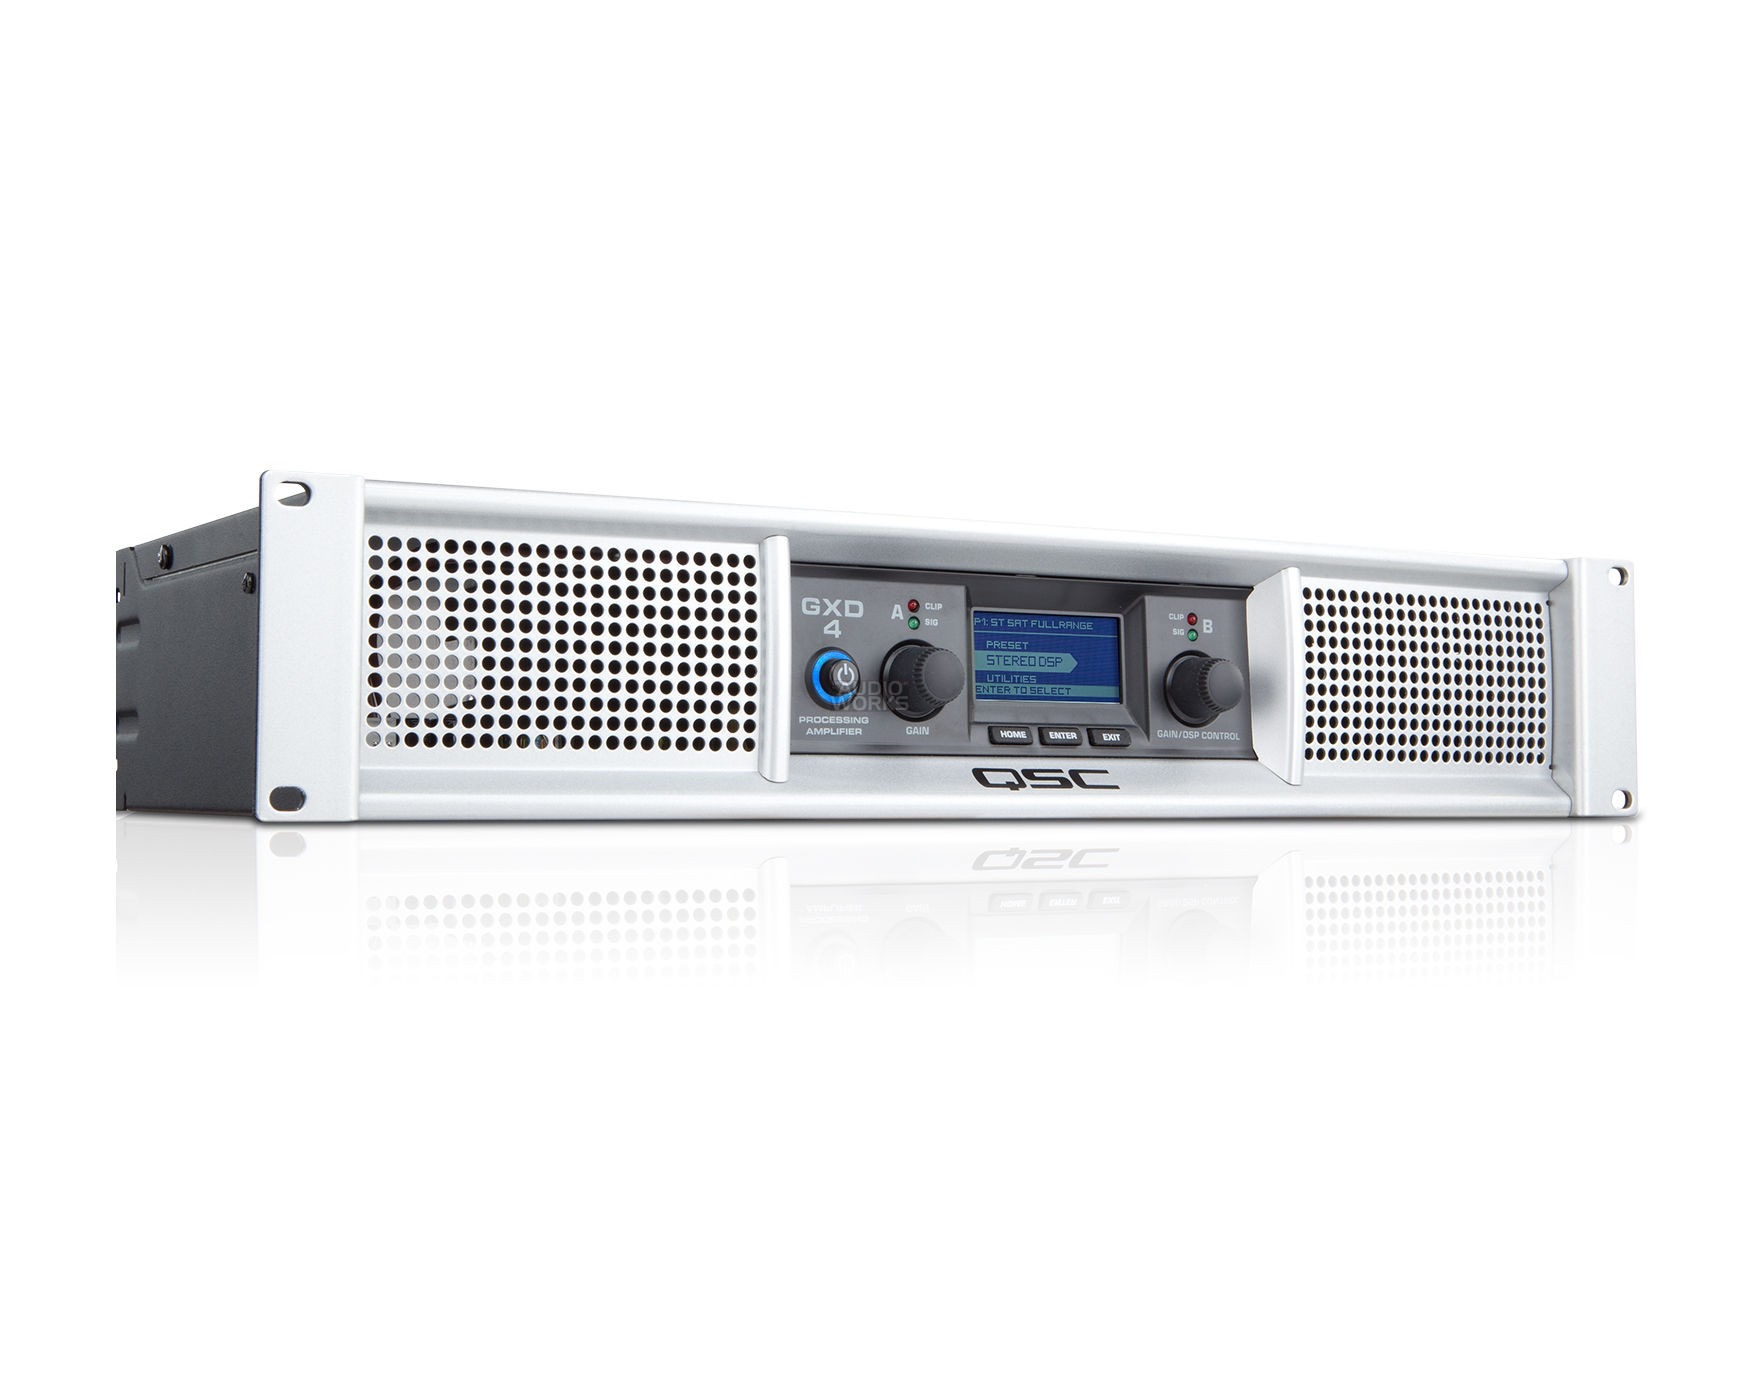 QSC GXD4 1600W PROFFESIONAL POWER AMPLIFIER WITH DSP